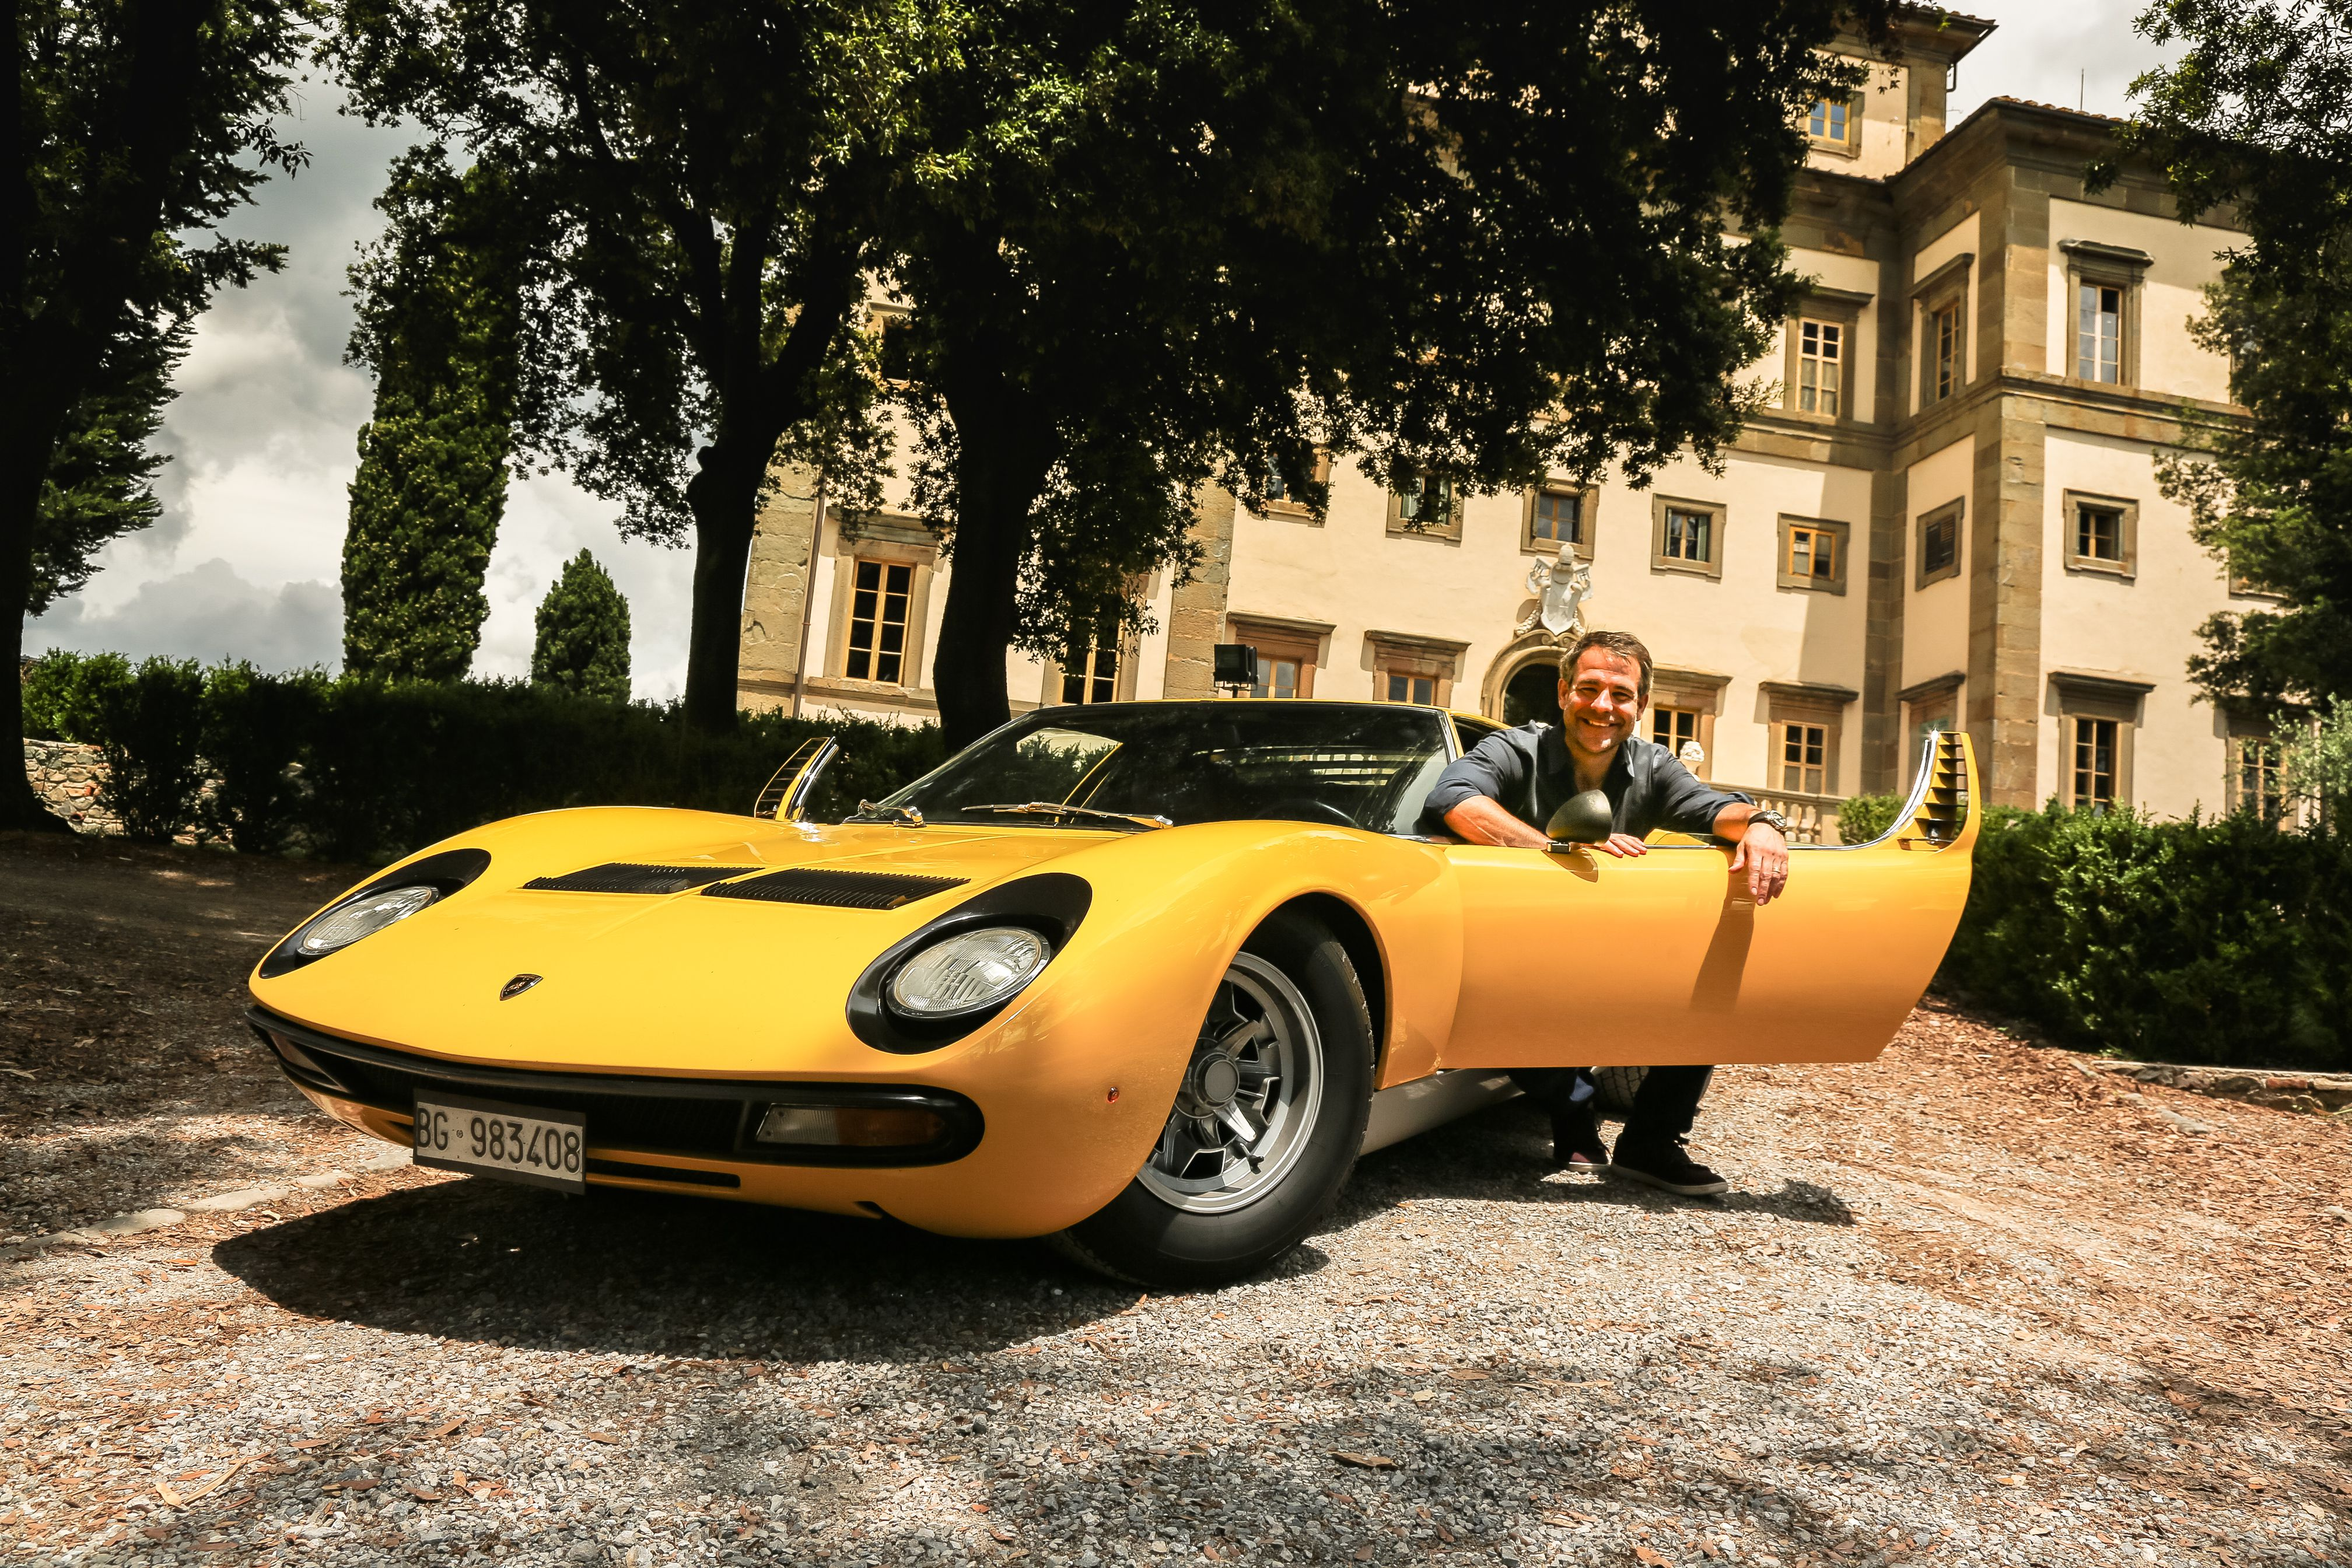 car bliss mounted single miura home sv d poster rear driving classic lamborghini chasers post s